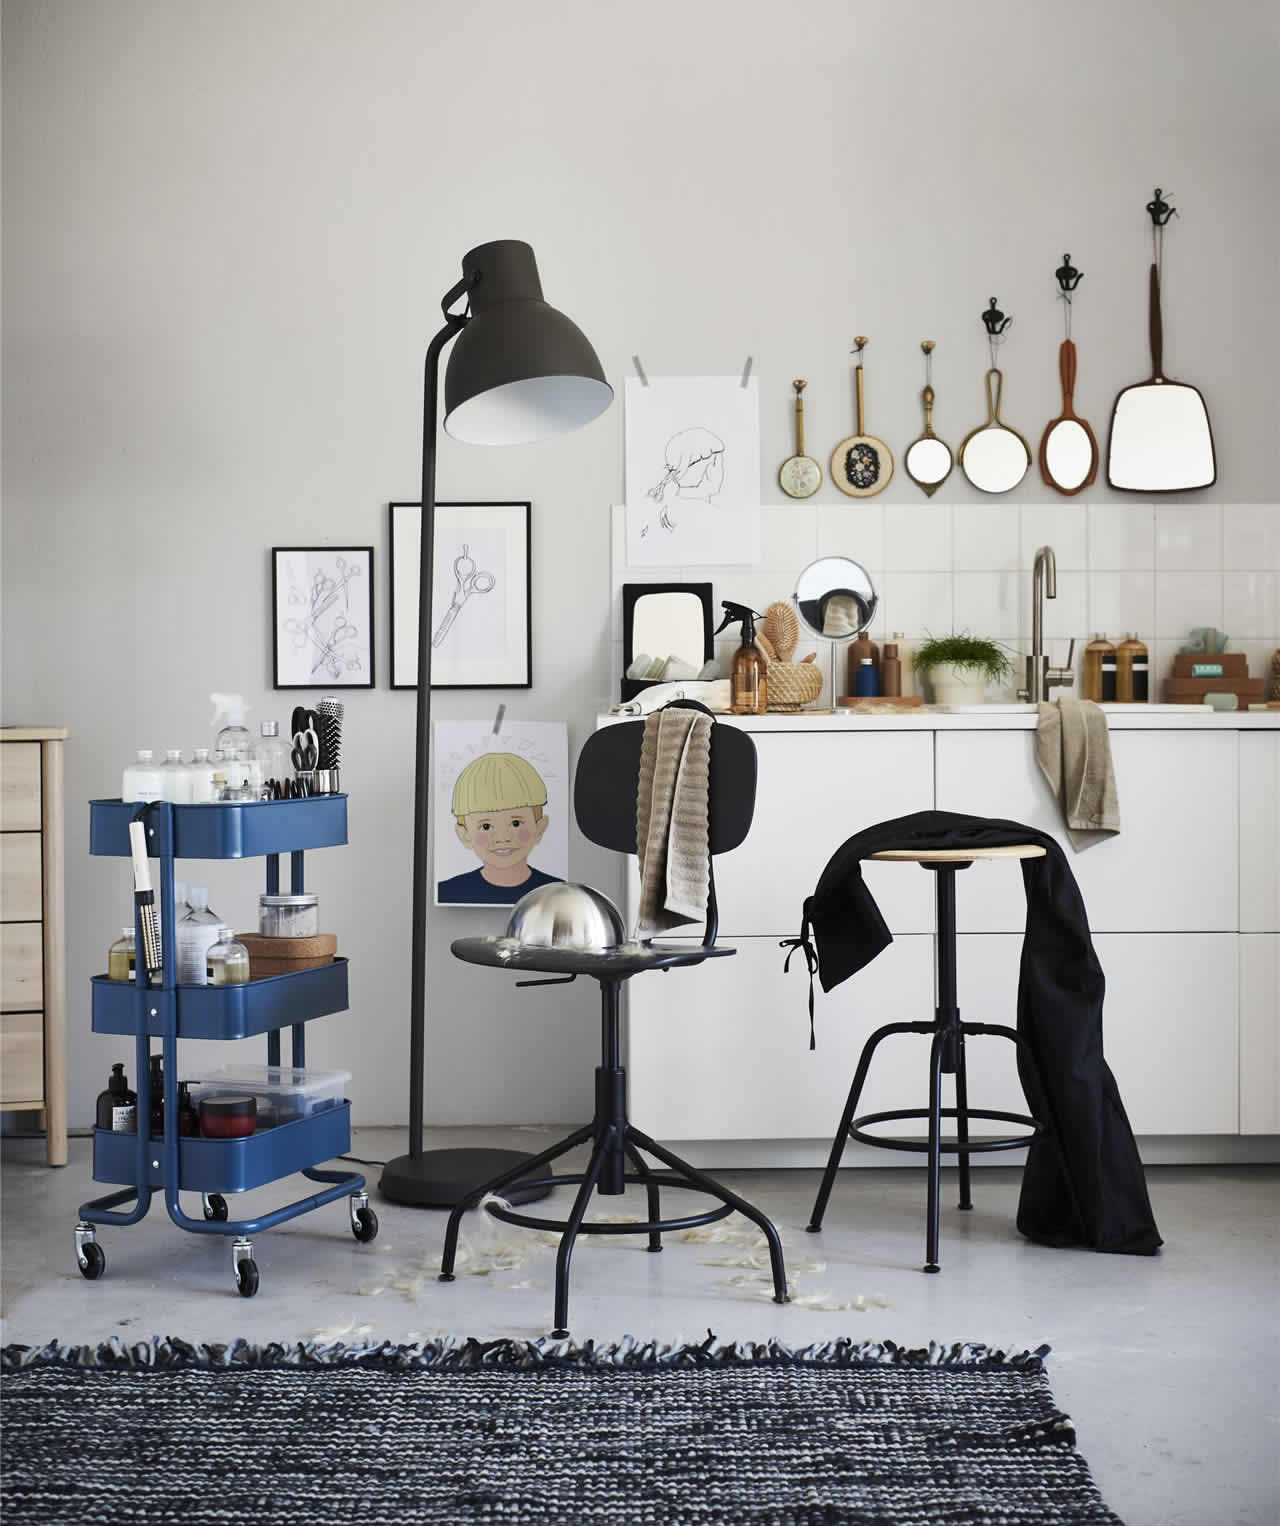 IKEA Ideas - Turn an extra office chair into something extraordinary